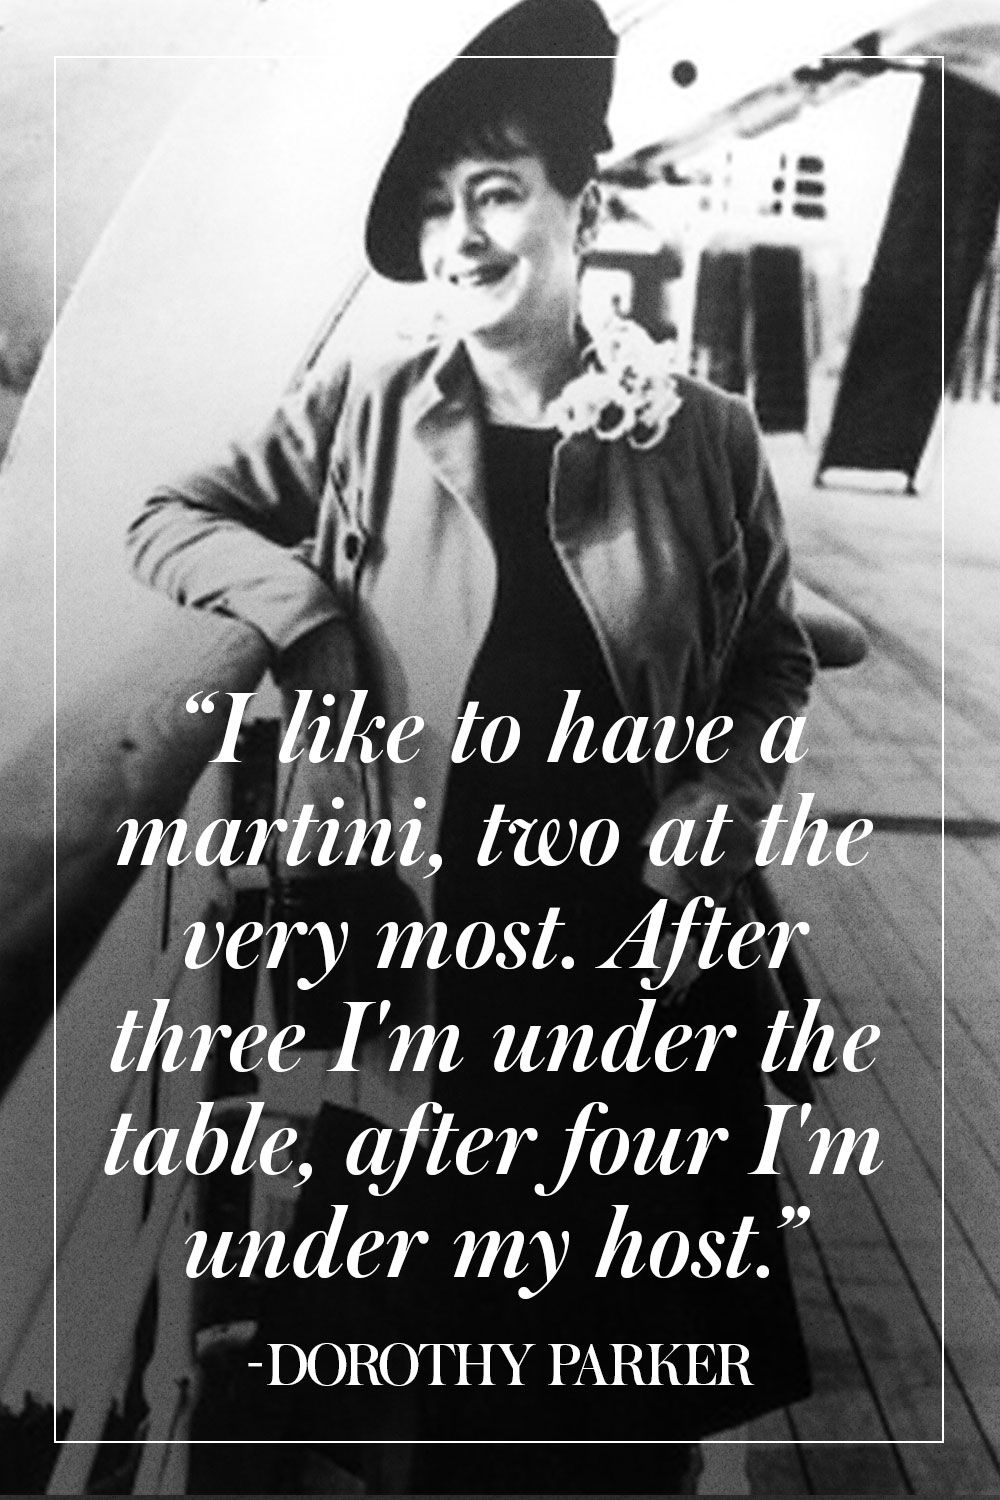 11 Pearls of Wisdom From Dorothy Parker | Inspiring Quotes ...